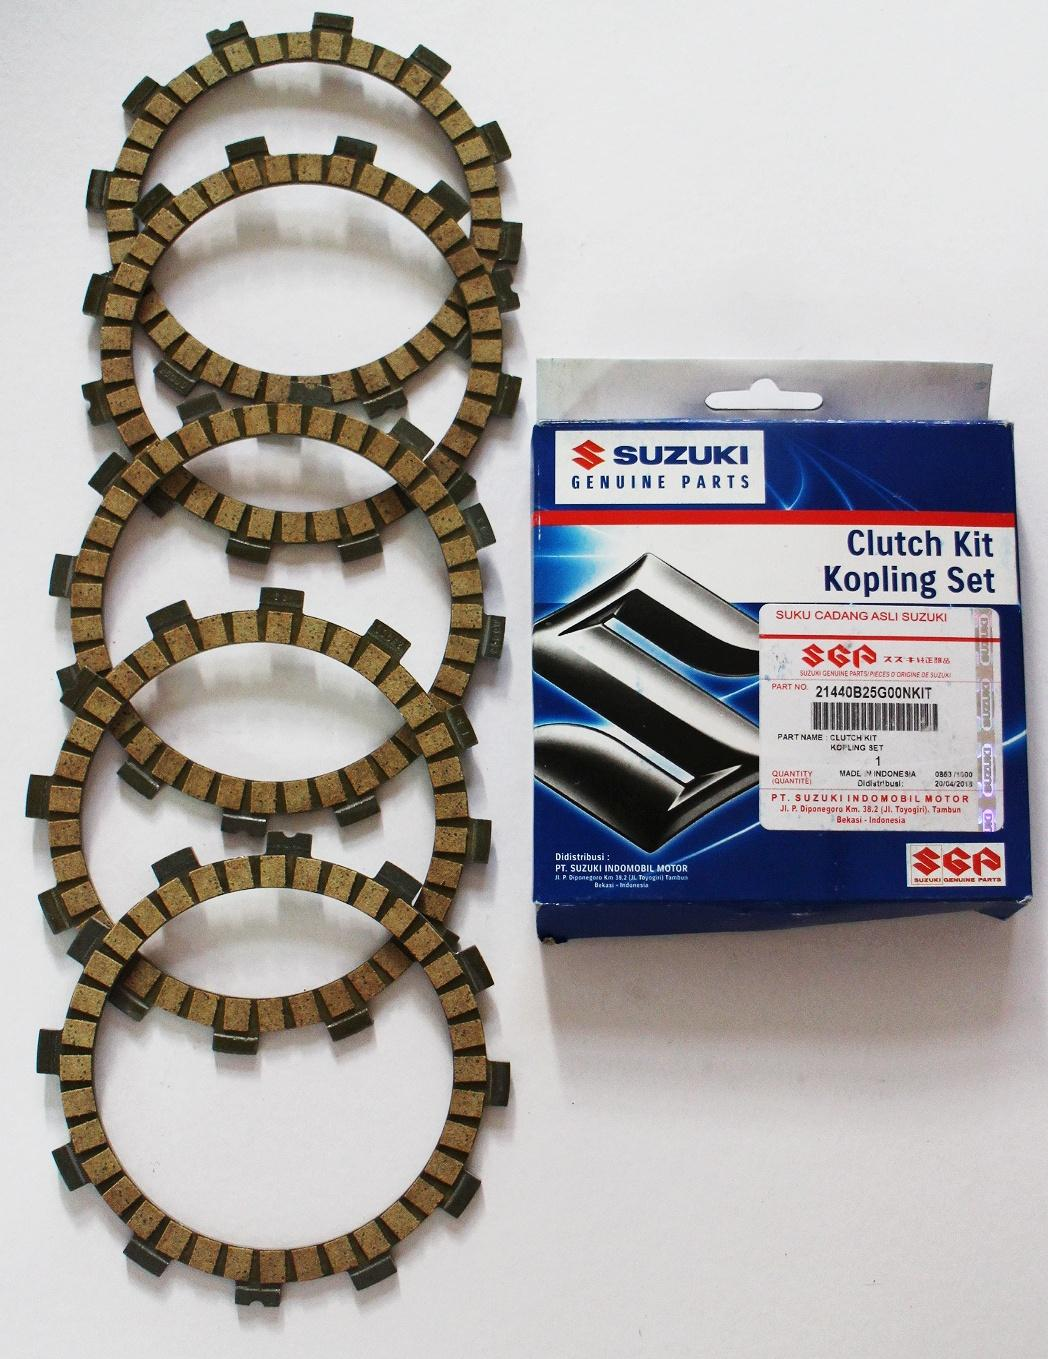 Original Suzuki Clutch Lining/clutch Kit Kopling Set (5 Pcs) For Raider 150 By Jca Motorshop.